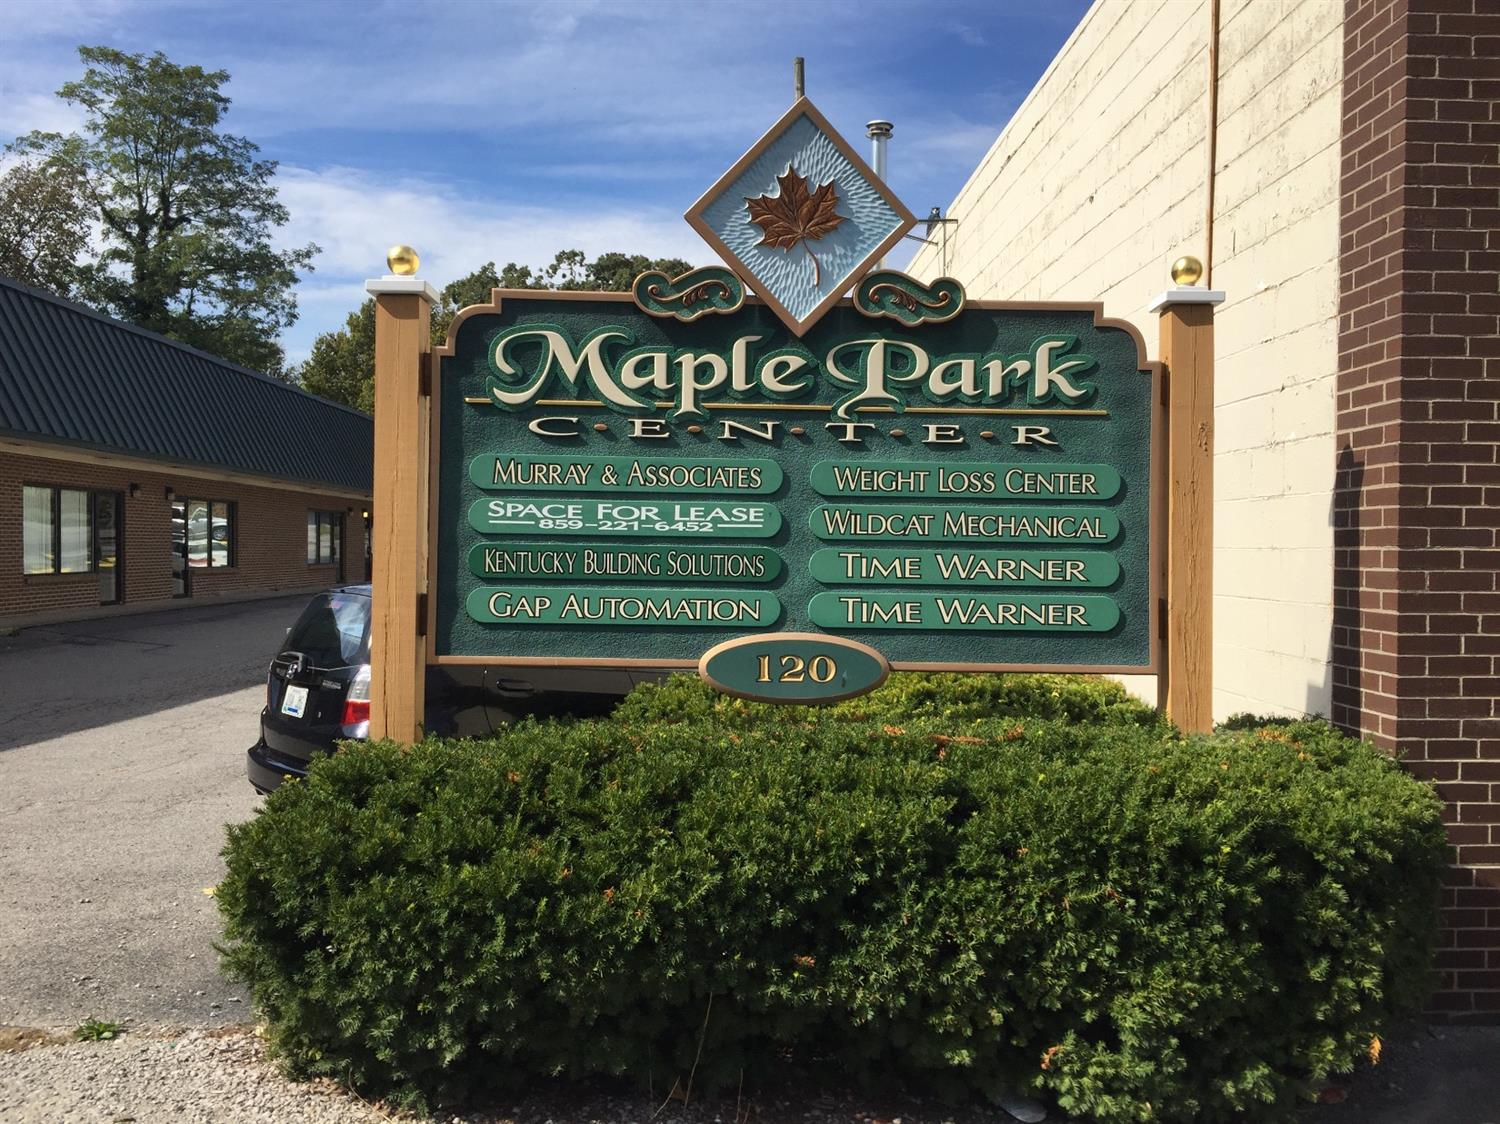 Looking%20for%20office%20or%20retail%20space%20for%20your%20business?%20Maple%20Park%20Center%20is%20centrally%20located%20in%20Winchester's%20business%20district%20and%20has%20plenty%20of%20parking.%20%20Close%20to%20the%20Court%20House%20and%20banks.%20I-64%20is%20also%20easily%20accessible.